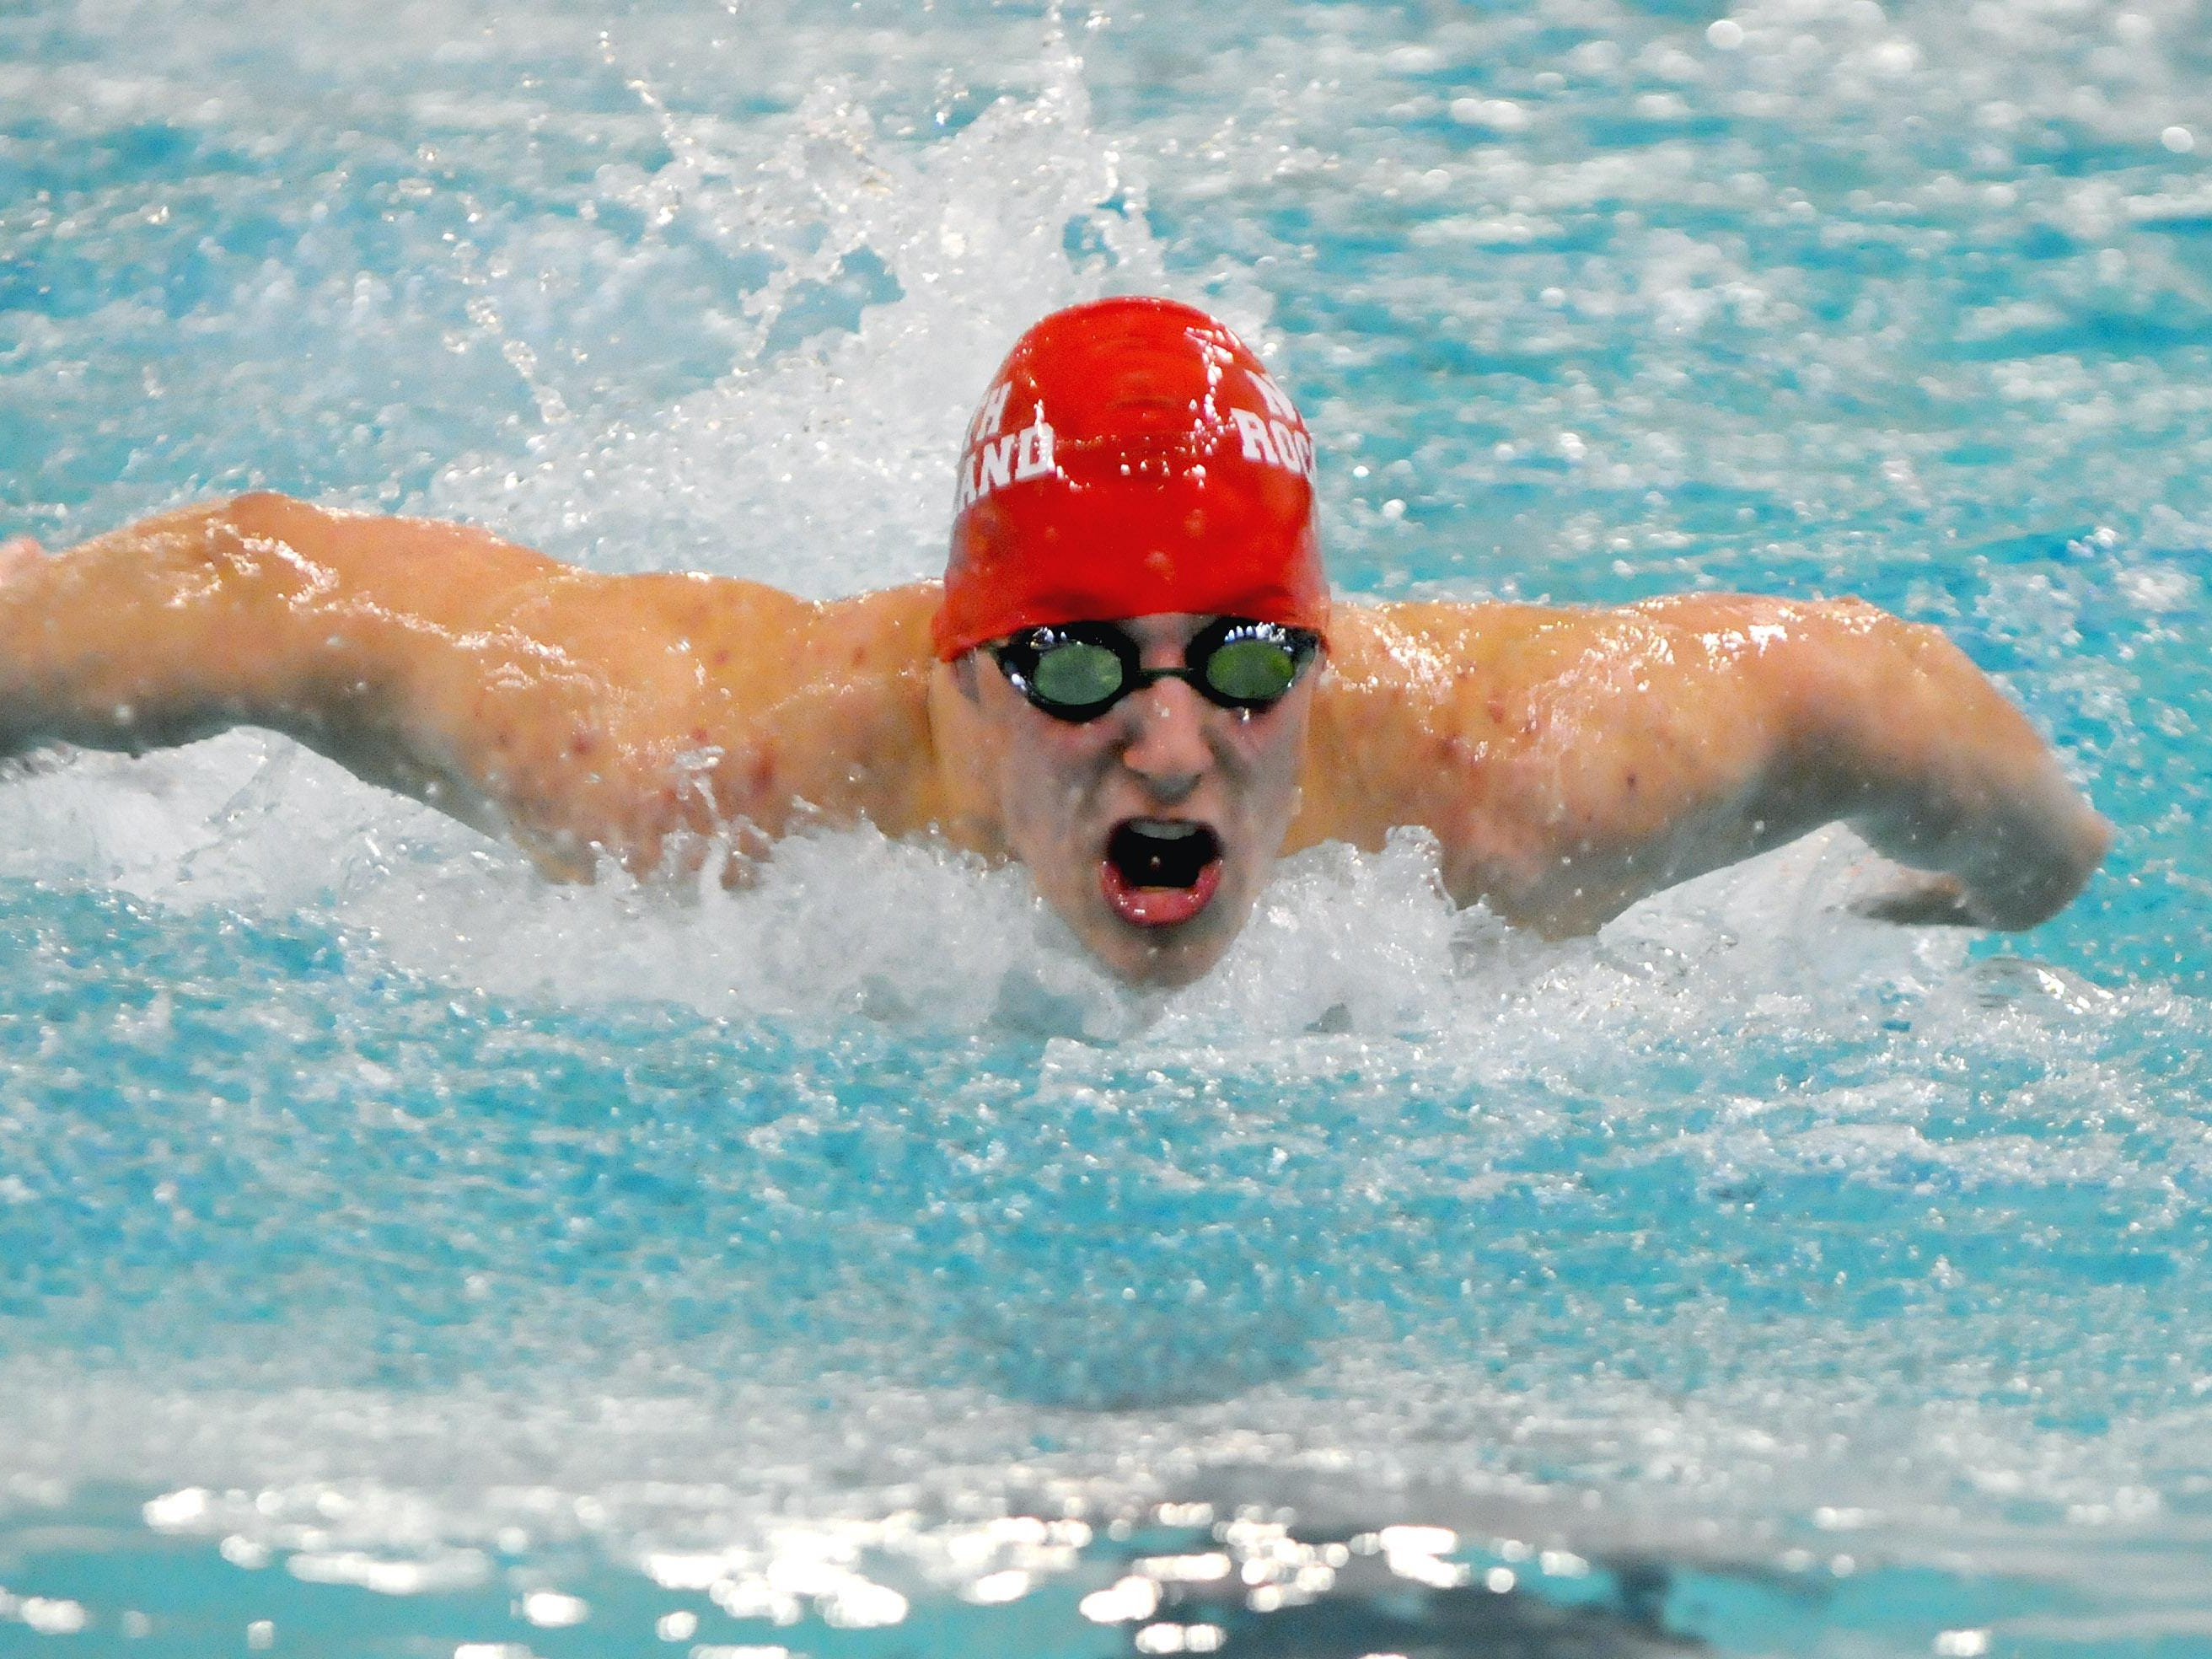 North Rockland's Matthew Zugibe placed second in the championship heat of the 200-yard IM at the 2016 NYSPHSAA Swim Meet at Erie Community College's Flickinger Center in Buffalo on Saturday.